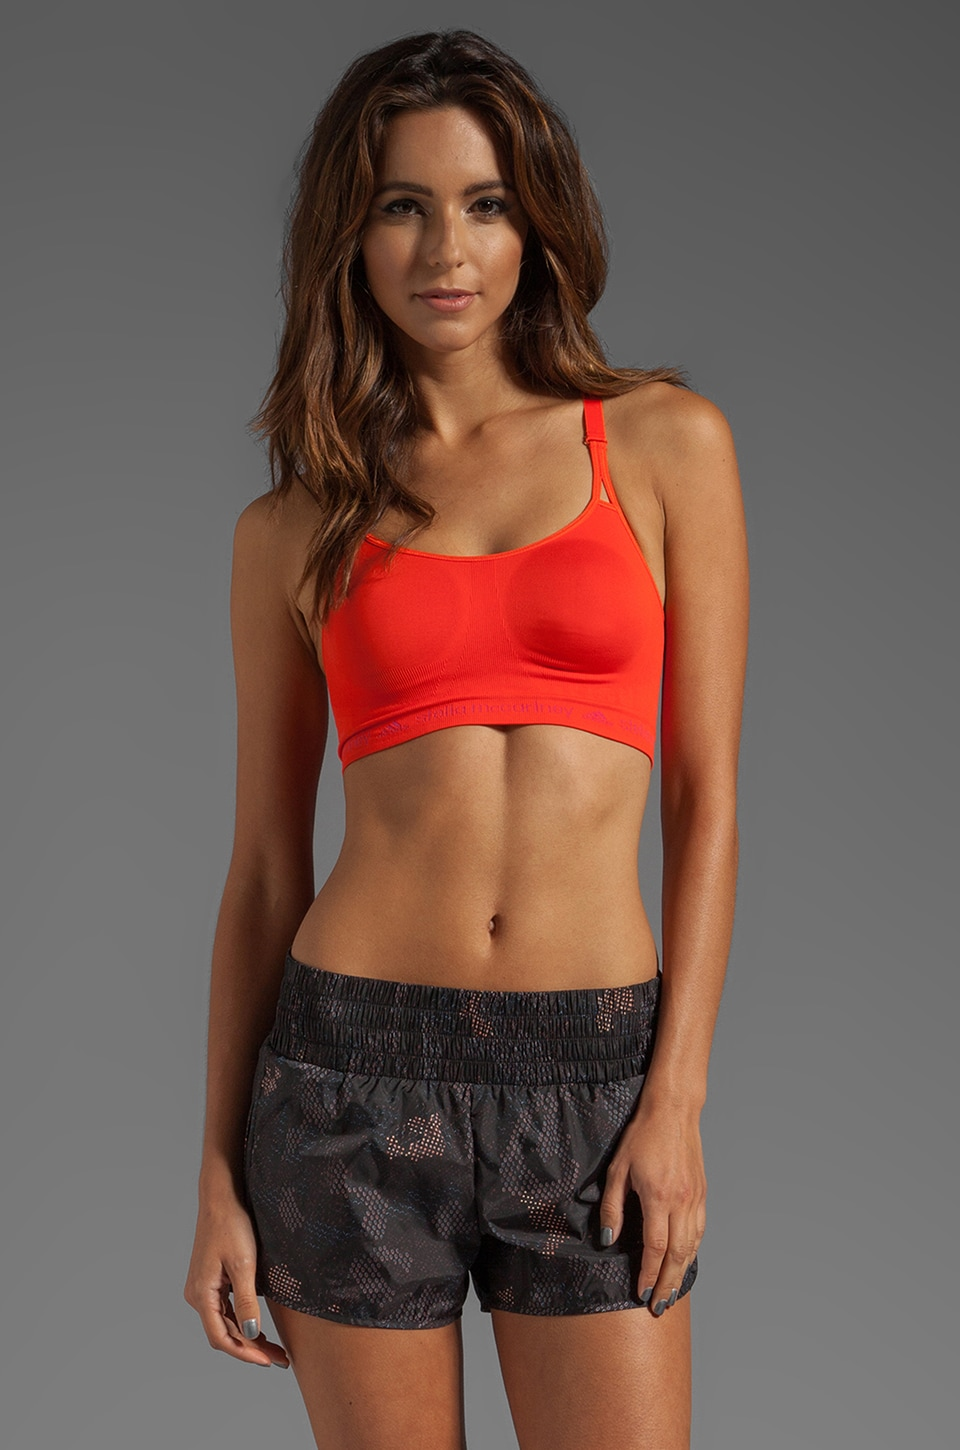 adidas by Stella McCartney SL Perf Bra in High Energy